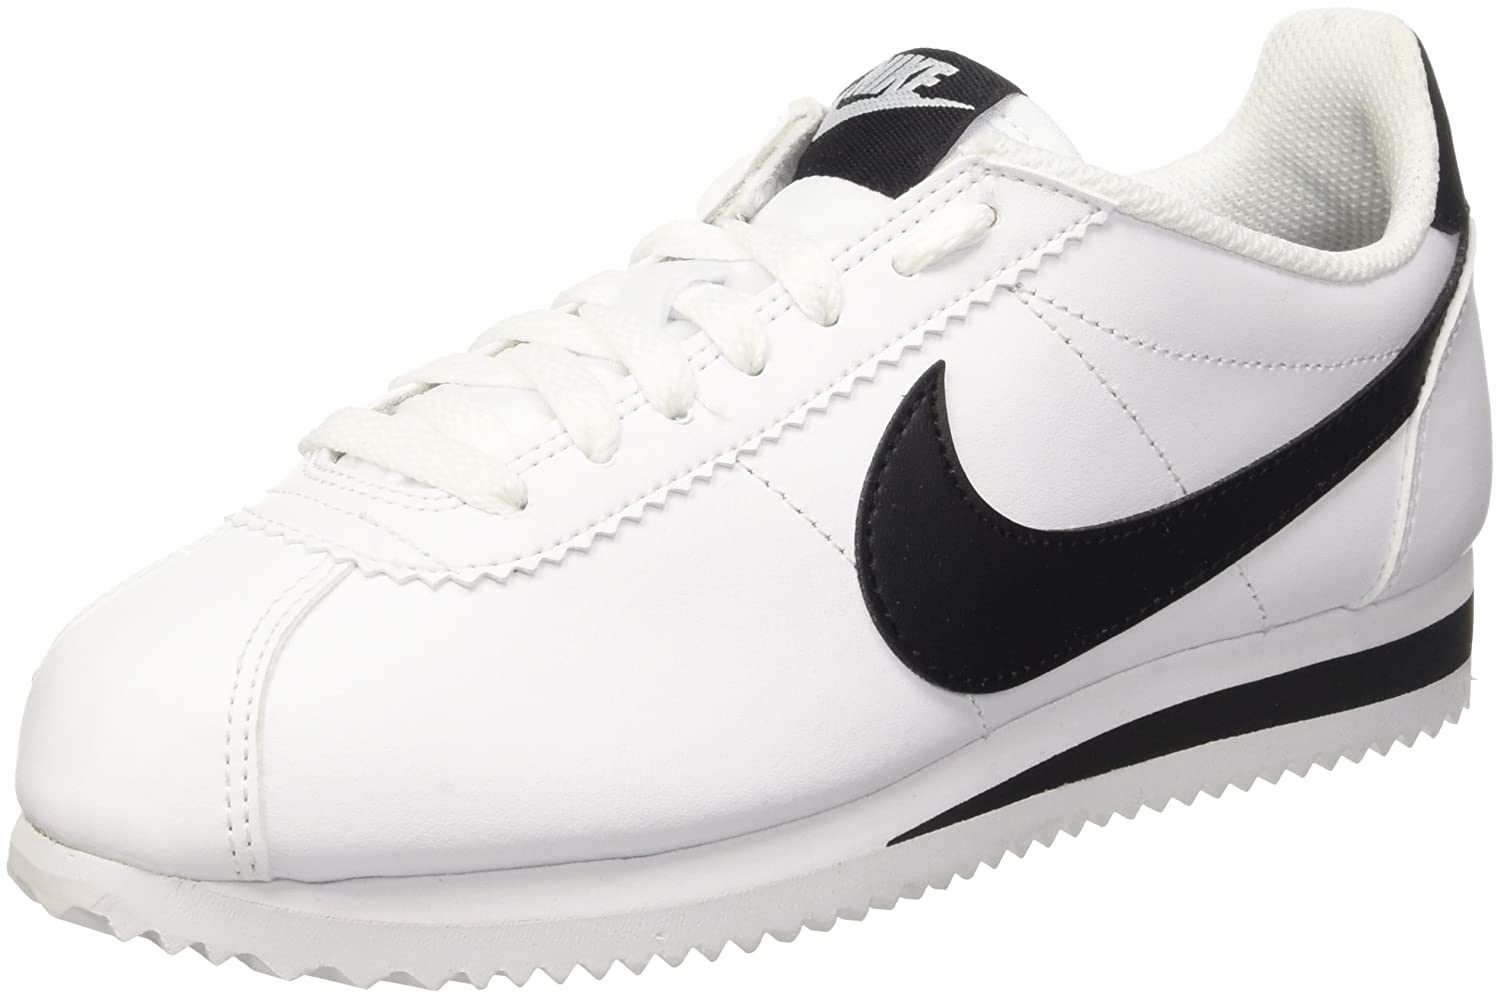 Nike Wmns Classic Cortez Leather, Zapatillas para Mujer 40.5 EU|Blanco (White/Black-white 101)